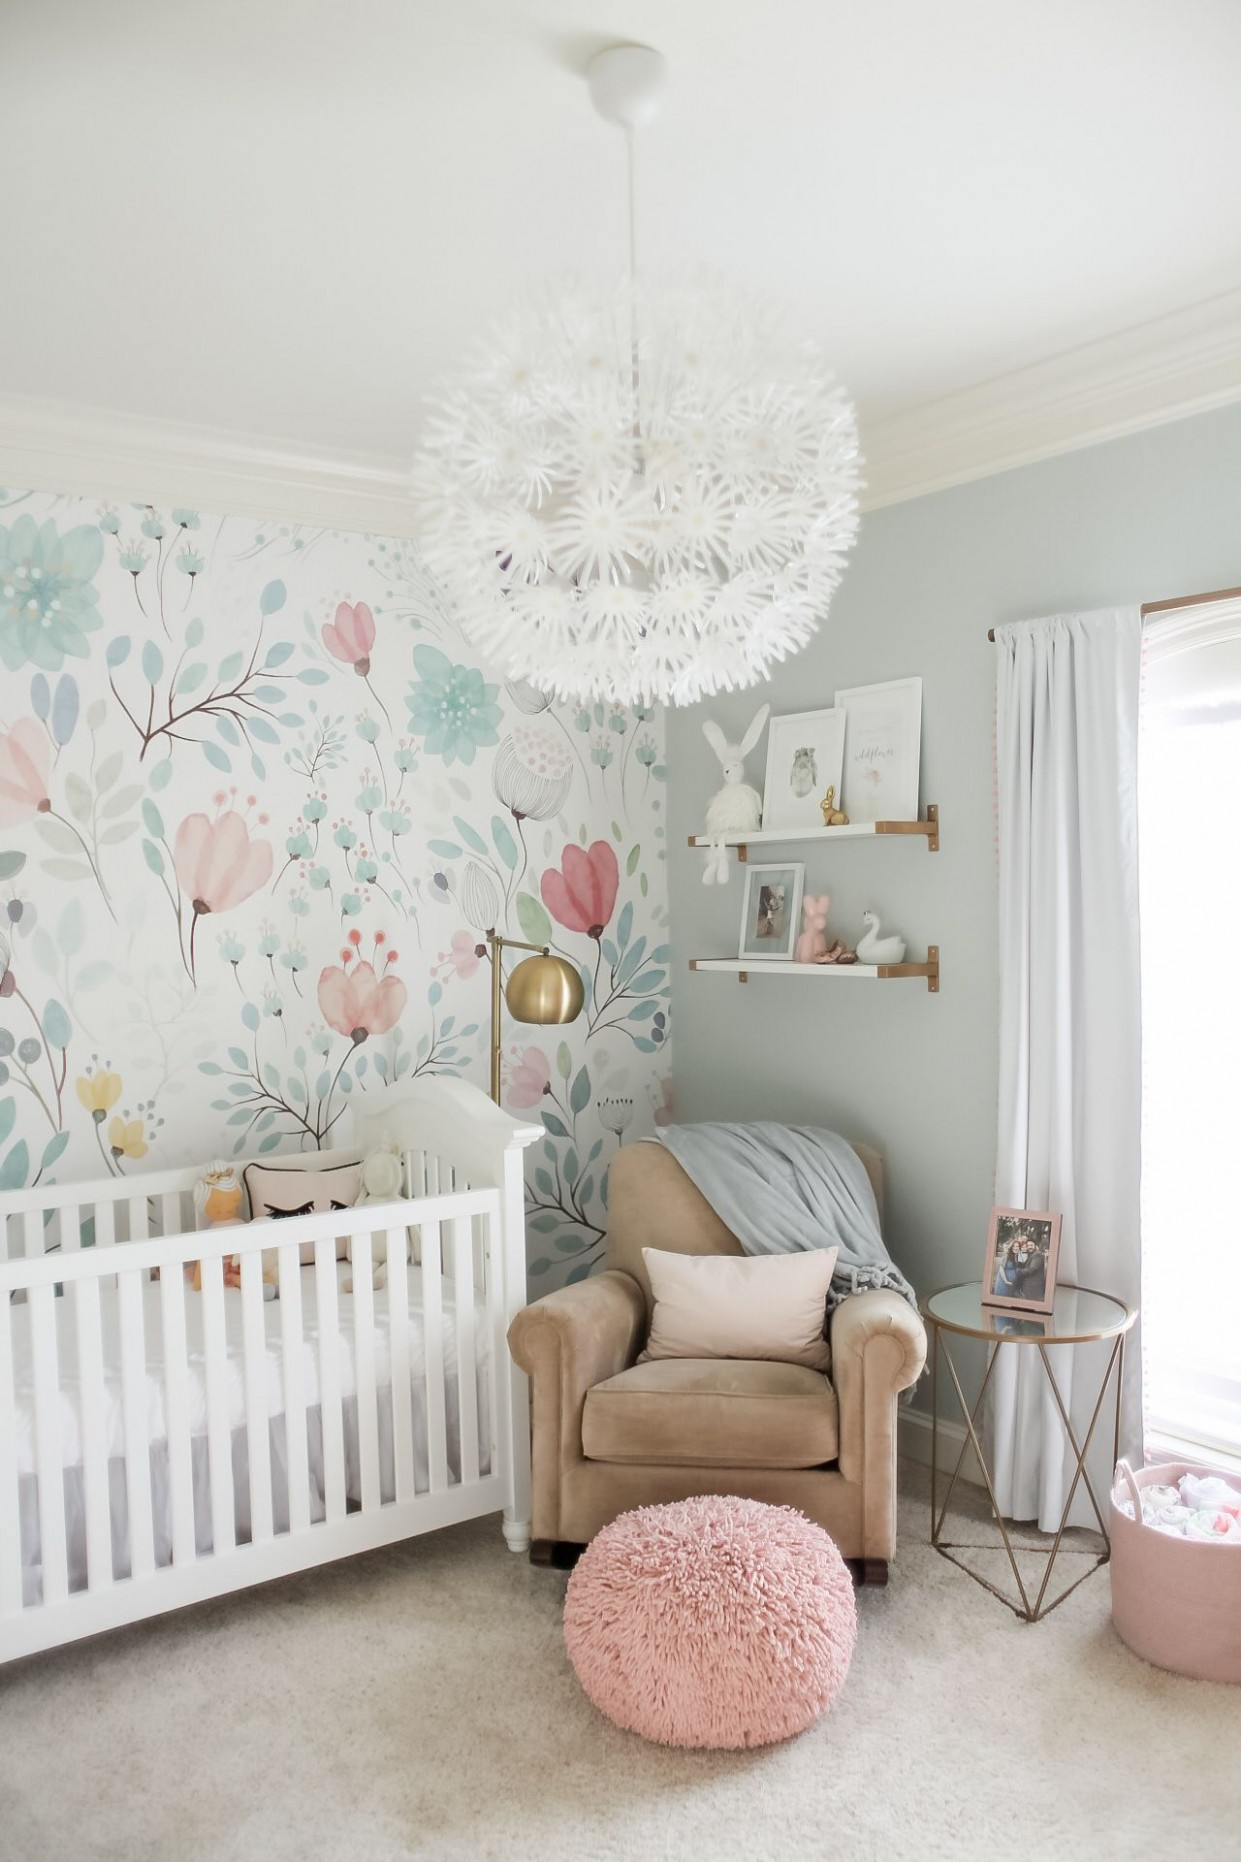 Bright and Whimsical Nursery for Colette - Project Nursery  Baby  - Baby Room Decor Girl